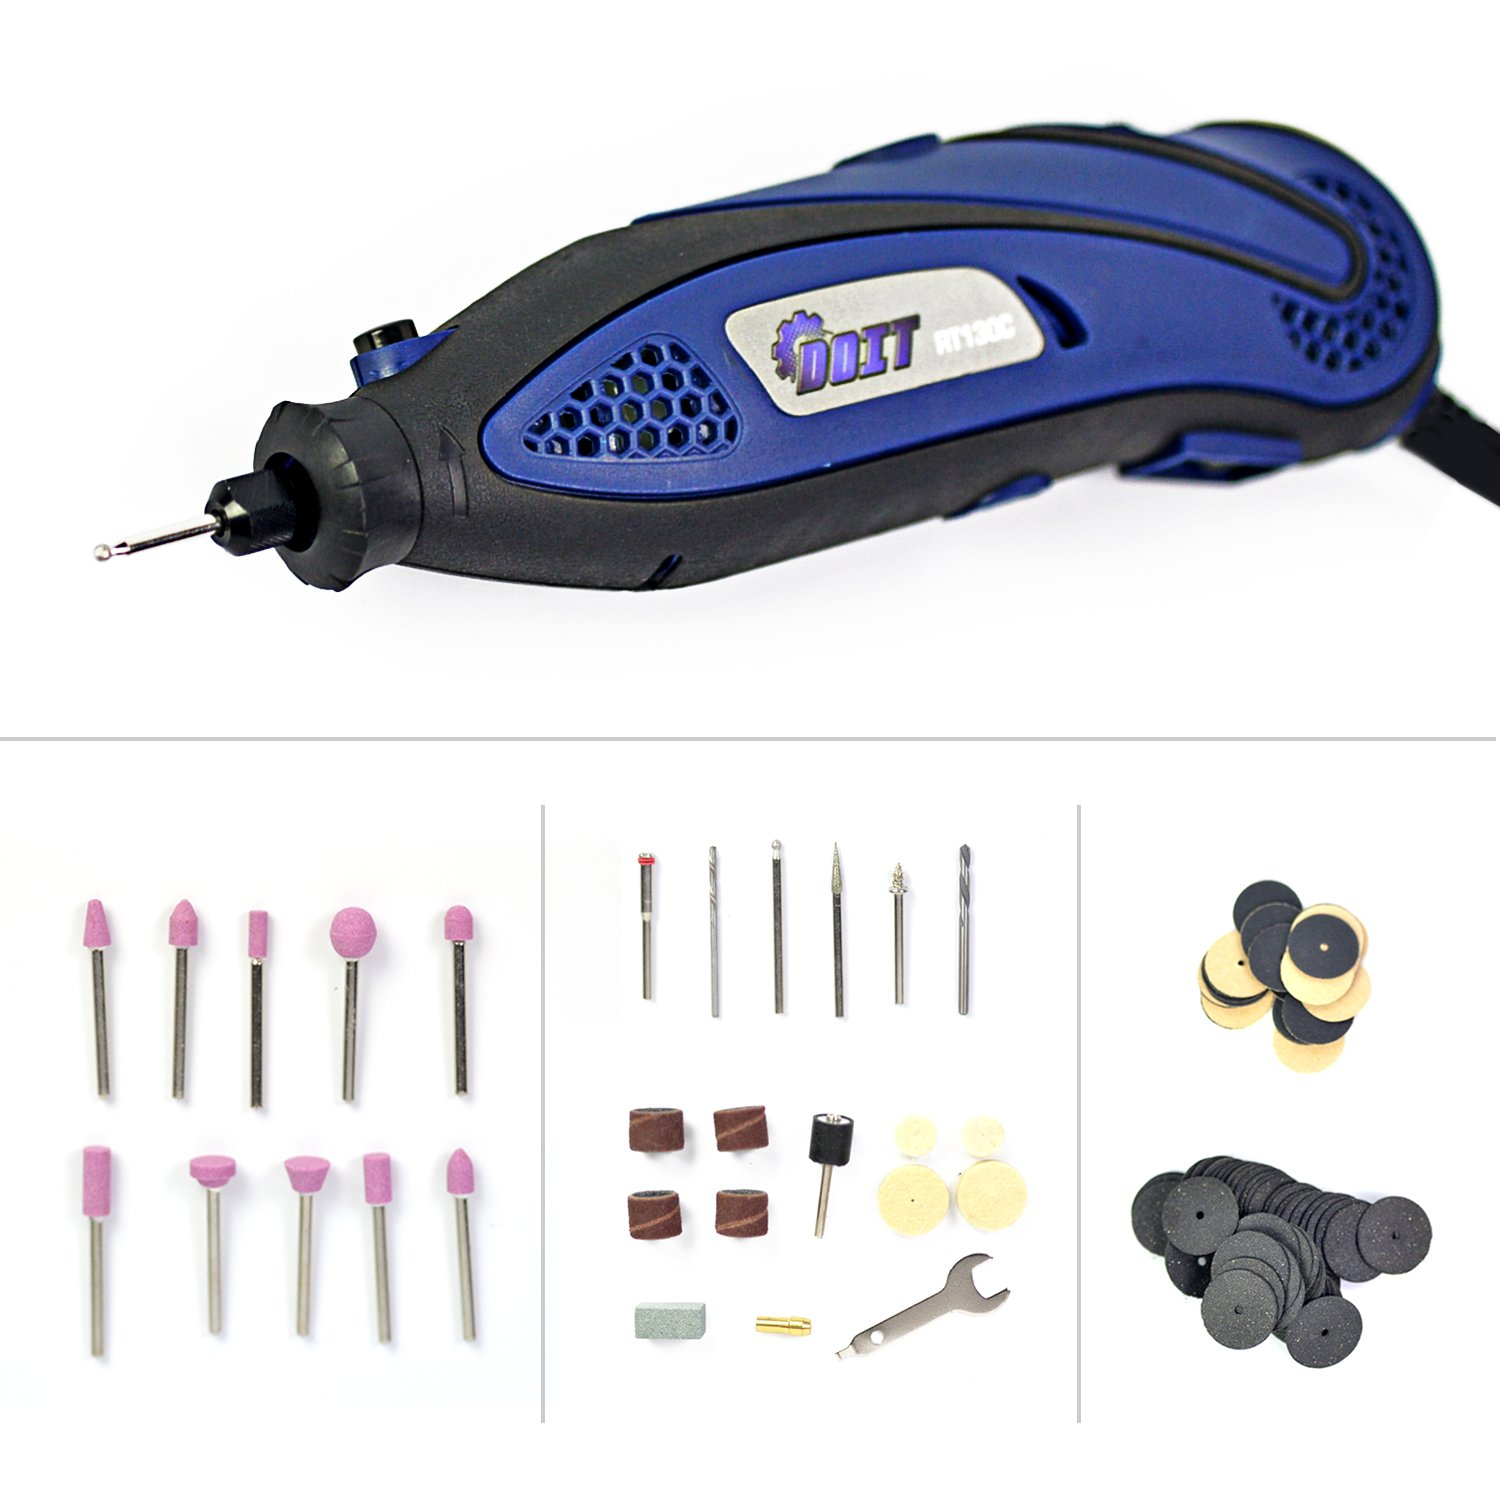 Doit Rotary Tool Kit Variable Speed with 109 pieces Accessories Bits, Mini Handy Drill for Grinding Sanding